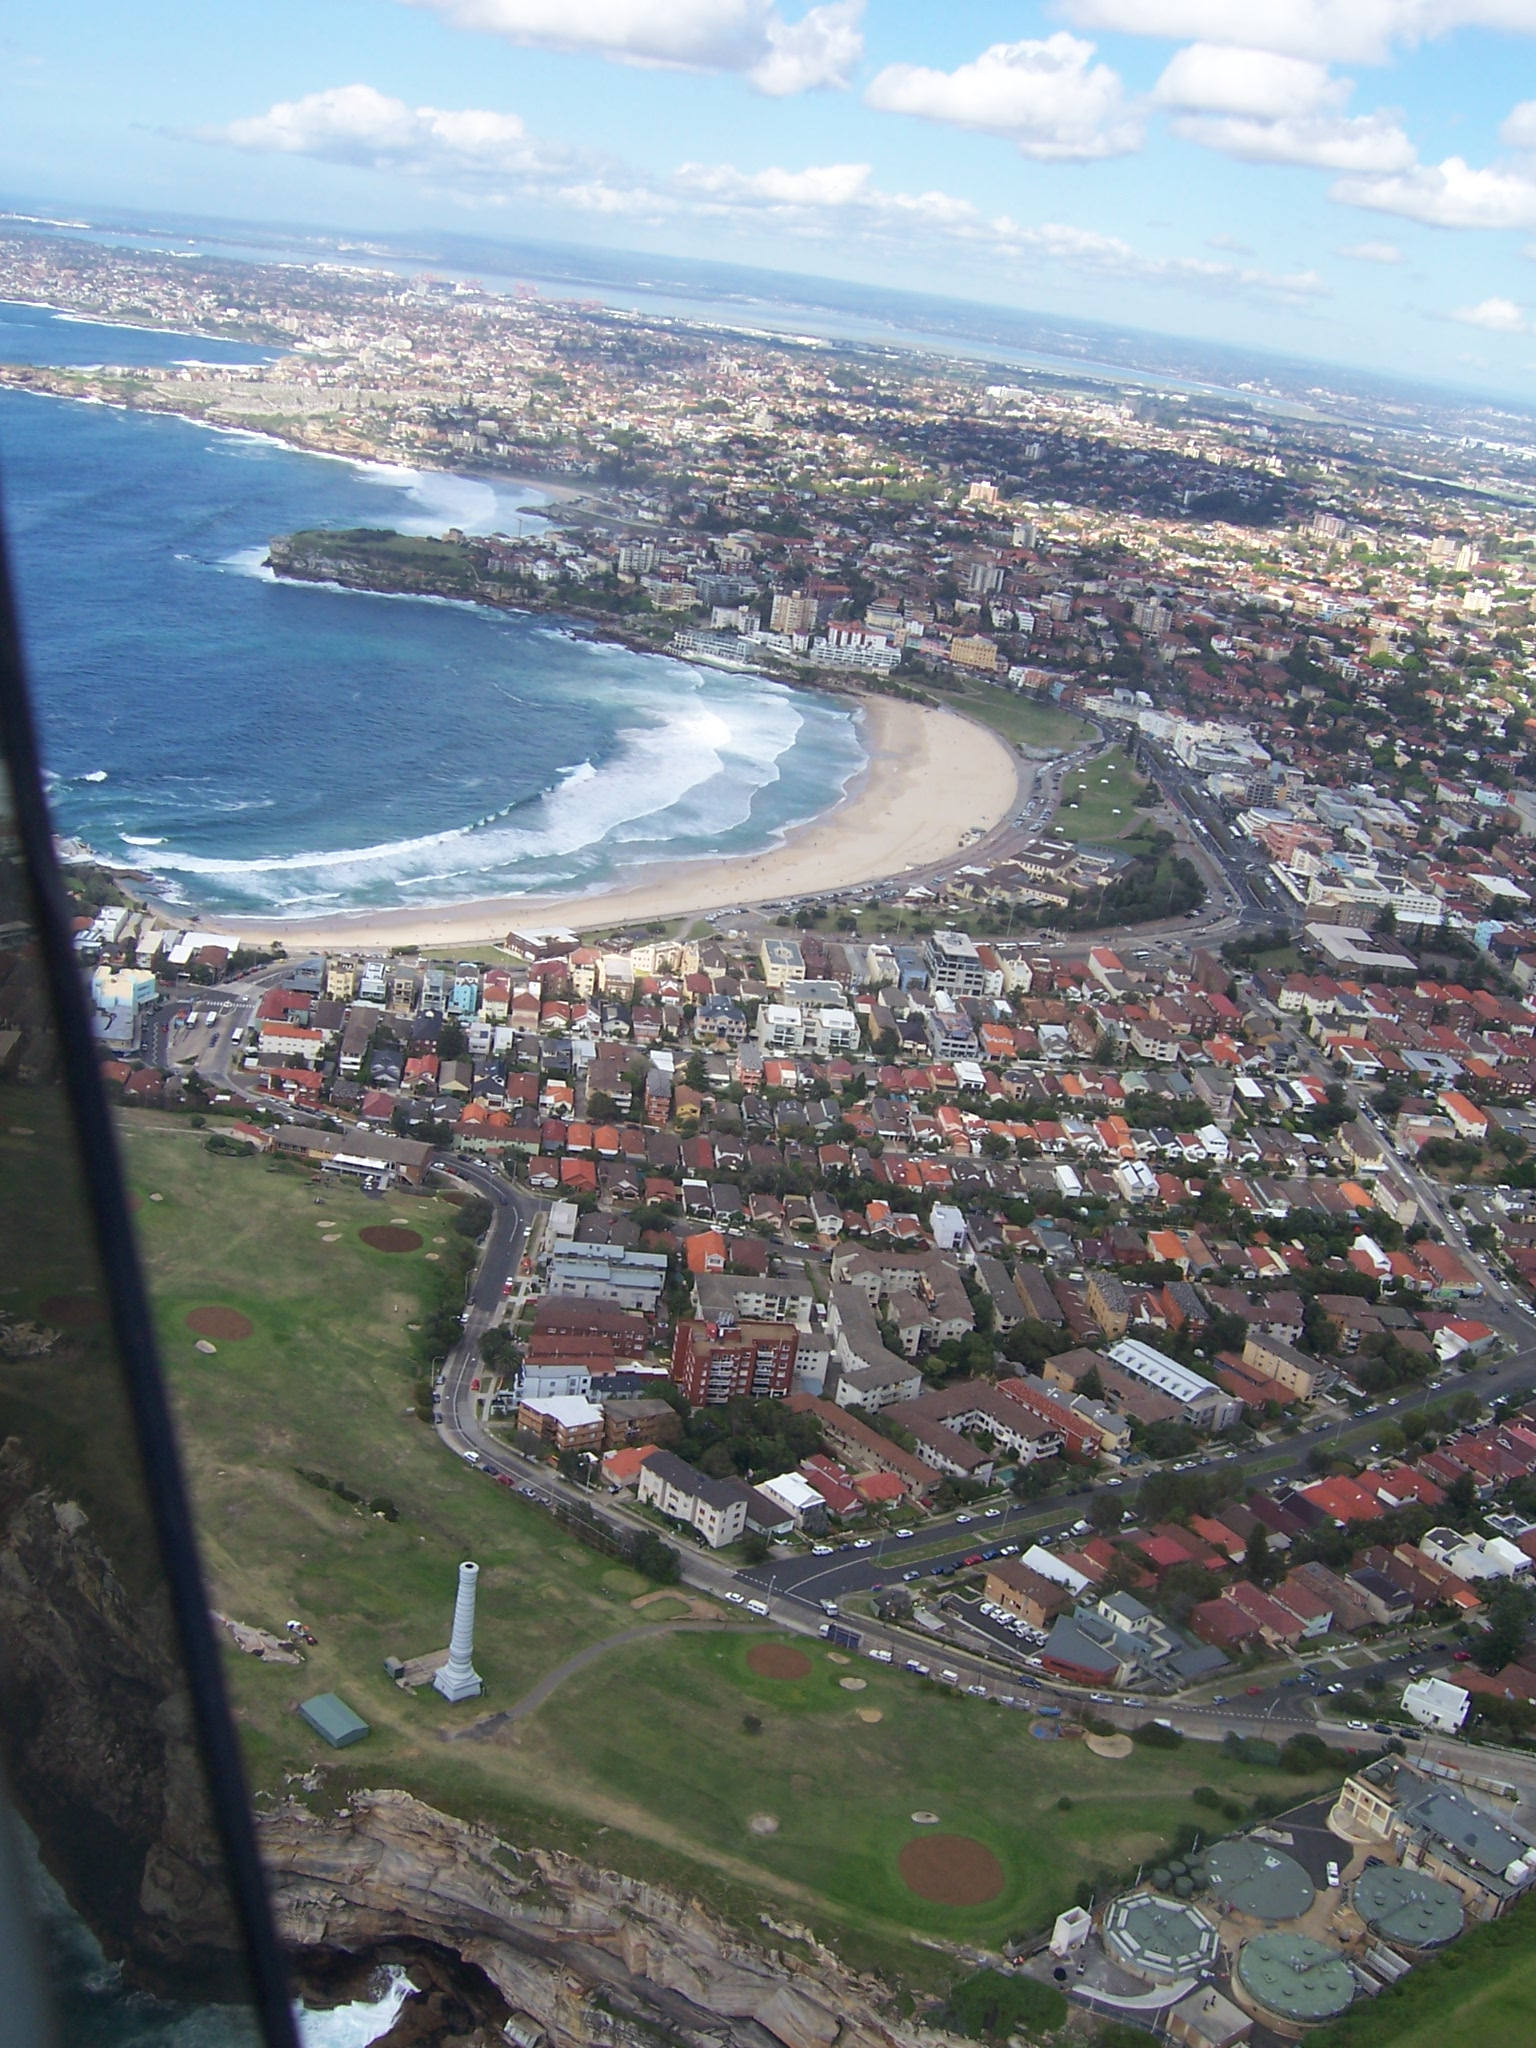 A great shot of a Sydney beach from a helicopter